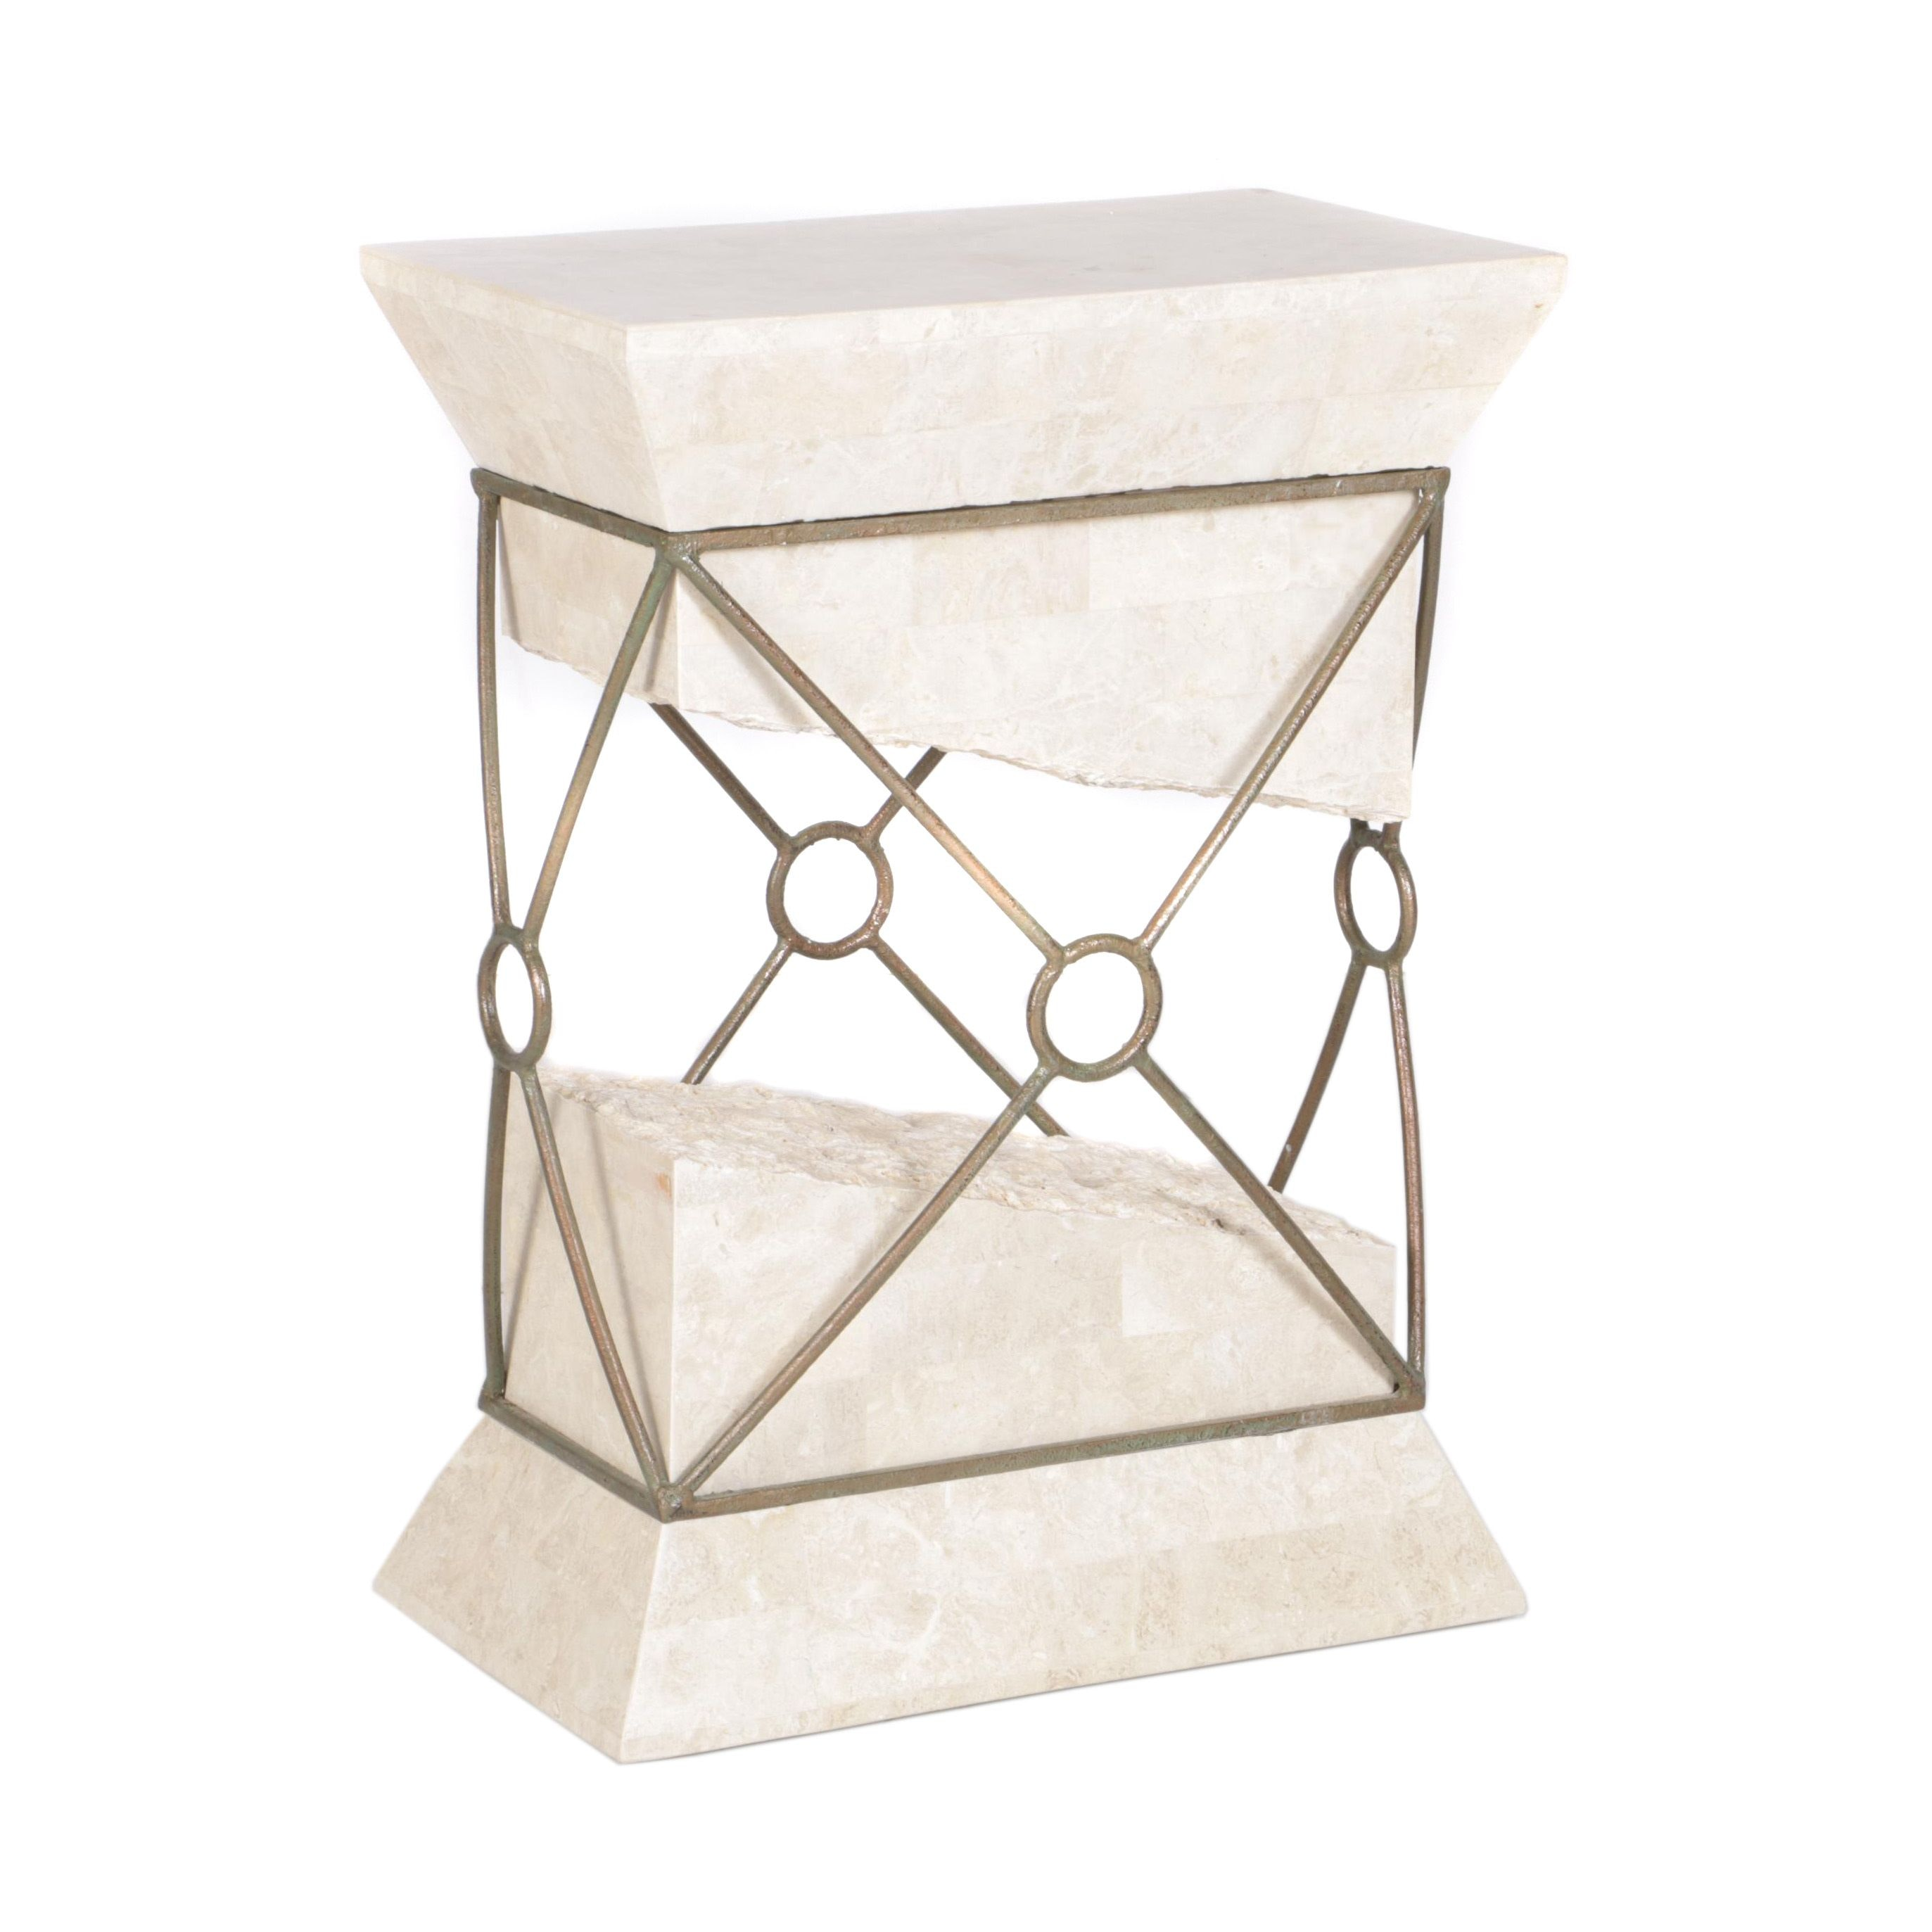 Fossilized Coral Sculptural Accent Table